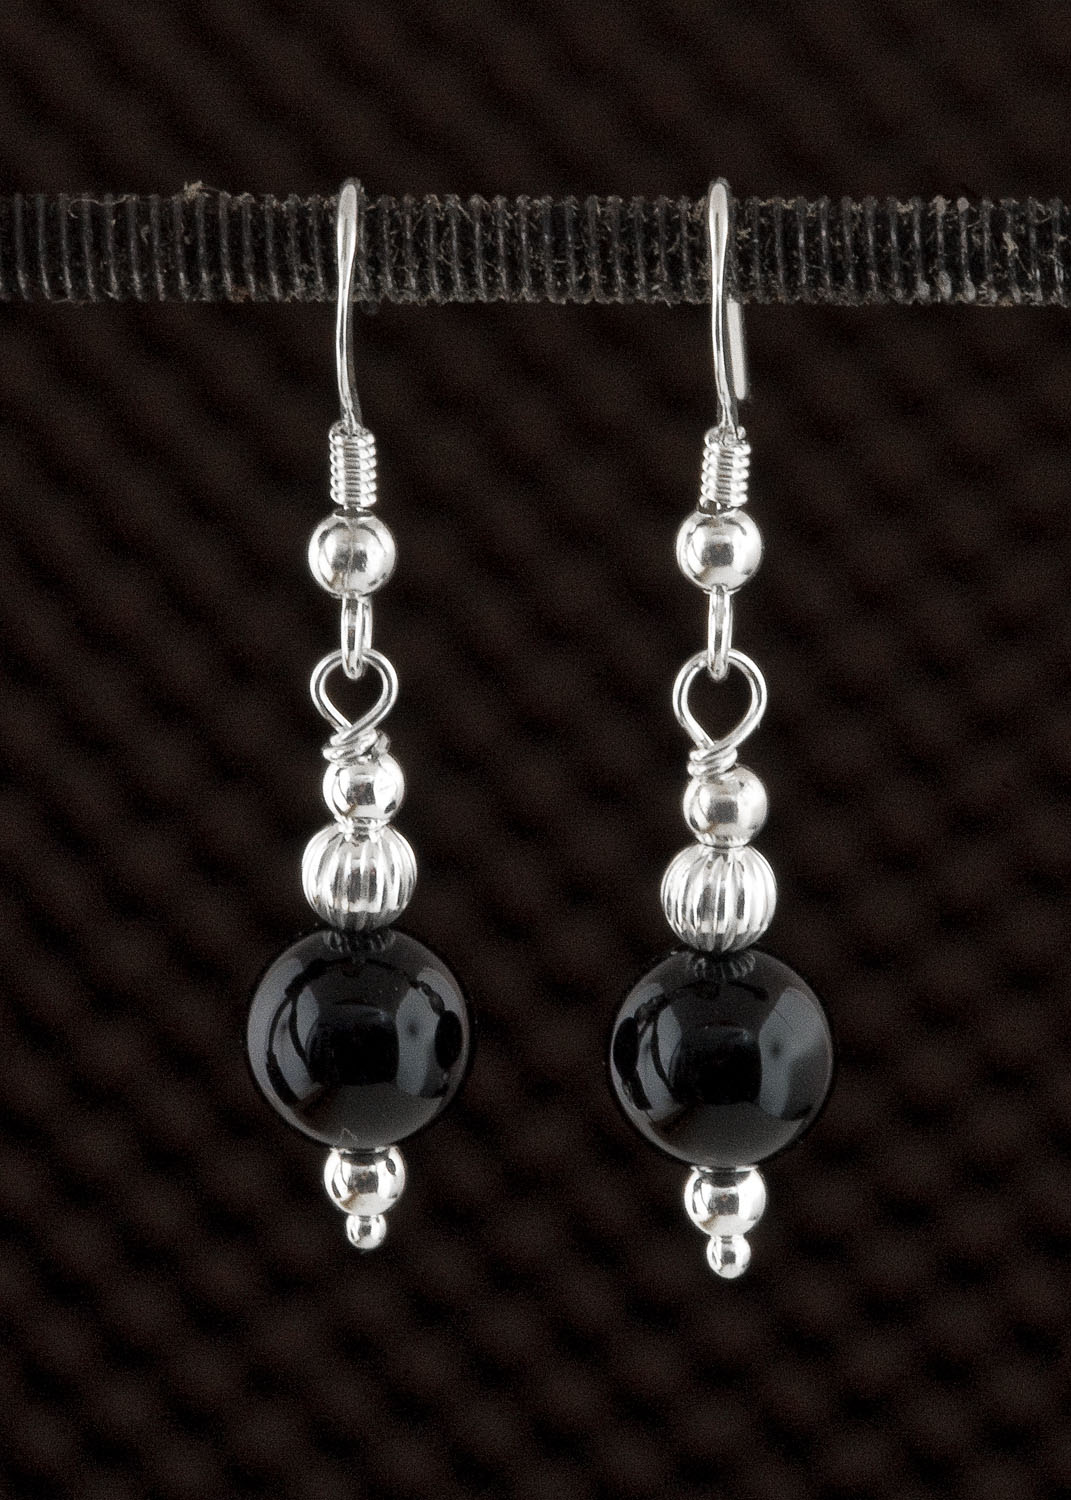 Black onyx and sterling silver